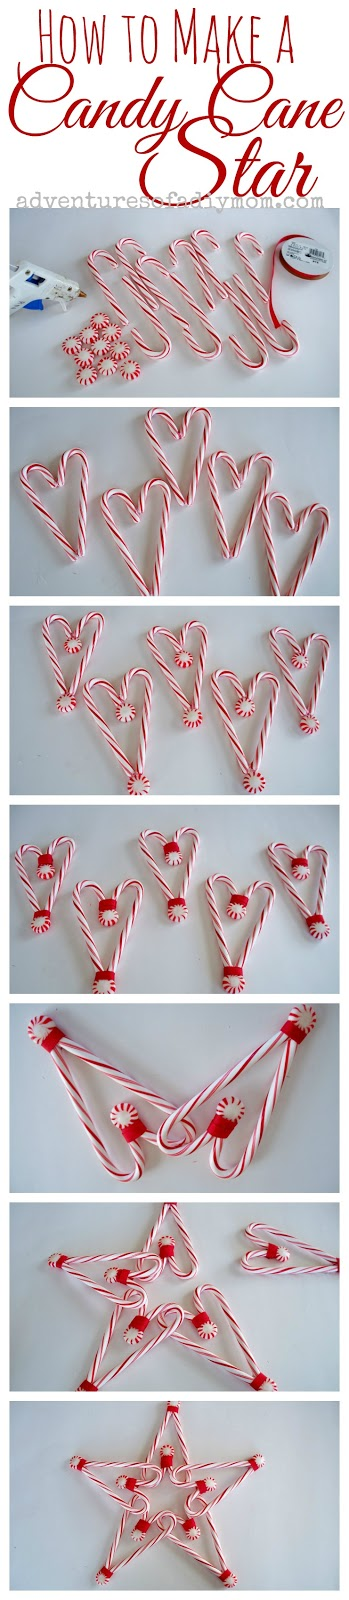 How to Make a Candy Cane Star - step-by-step